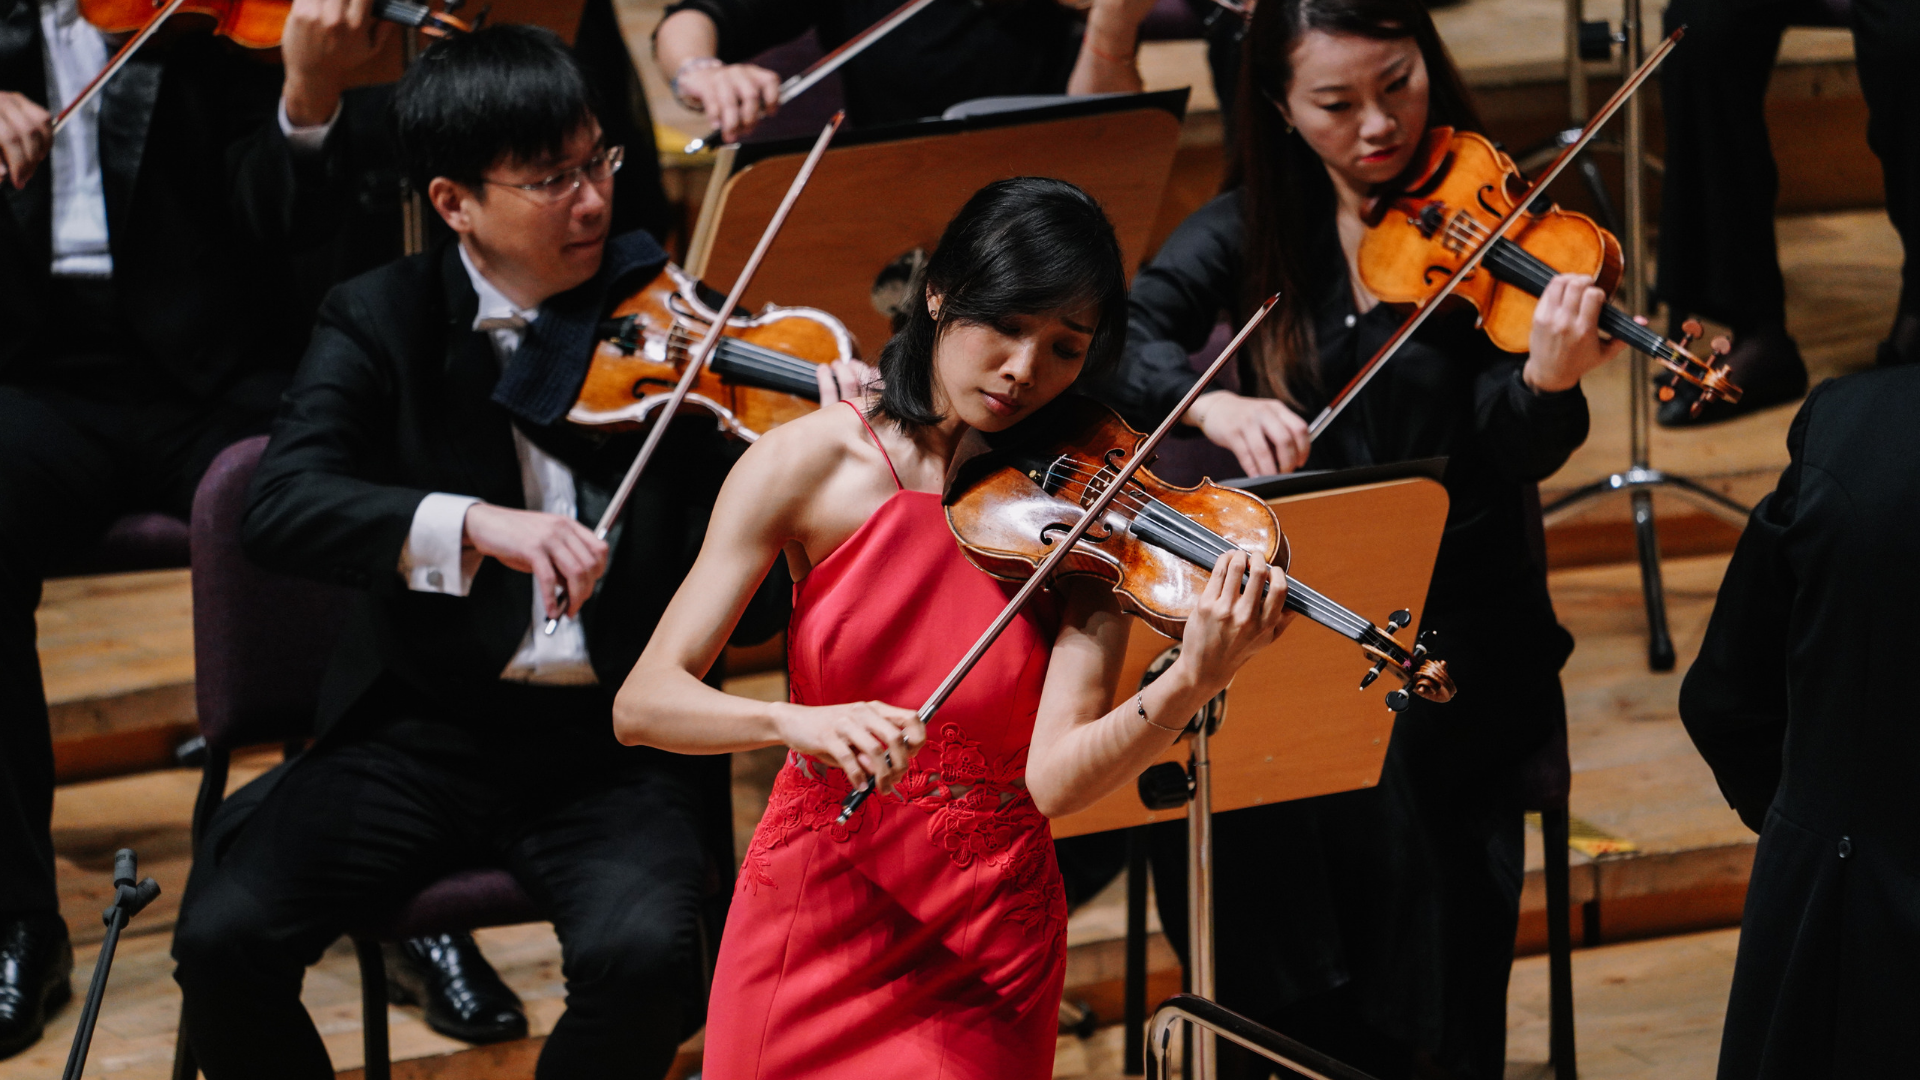 Nancy Zhou, first-place winner of the 2018 Shanghai Isaac Stern International Violin Competition, plays during her final round with the Shanghai Symphony Orchestra and conductor Michael Stern. Photo: SISIVC